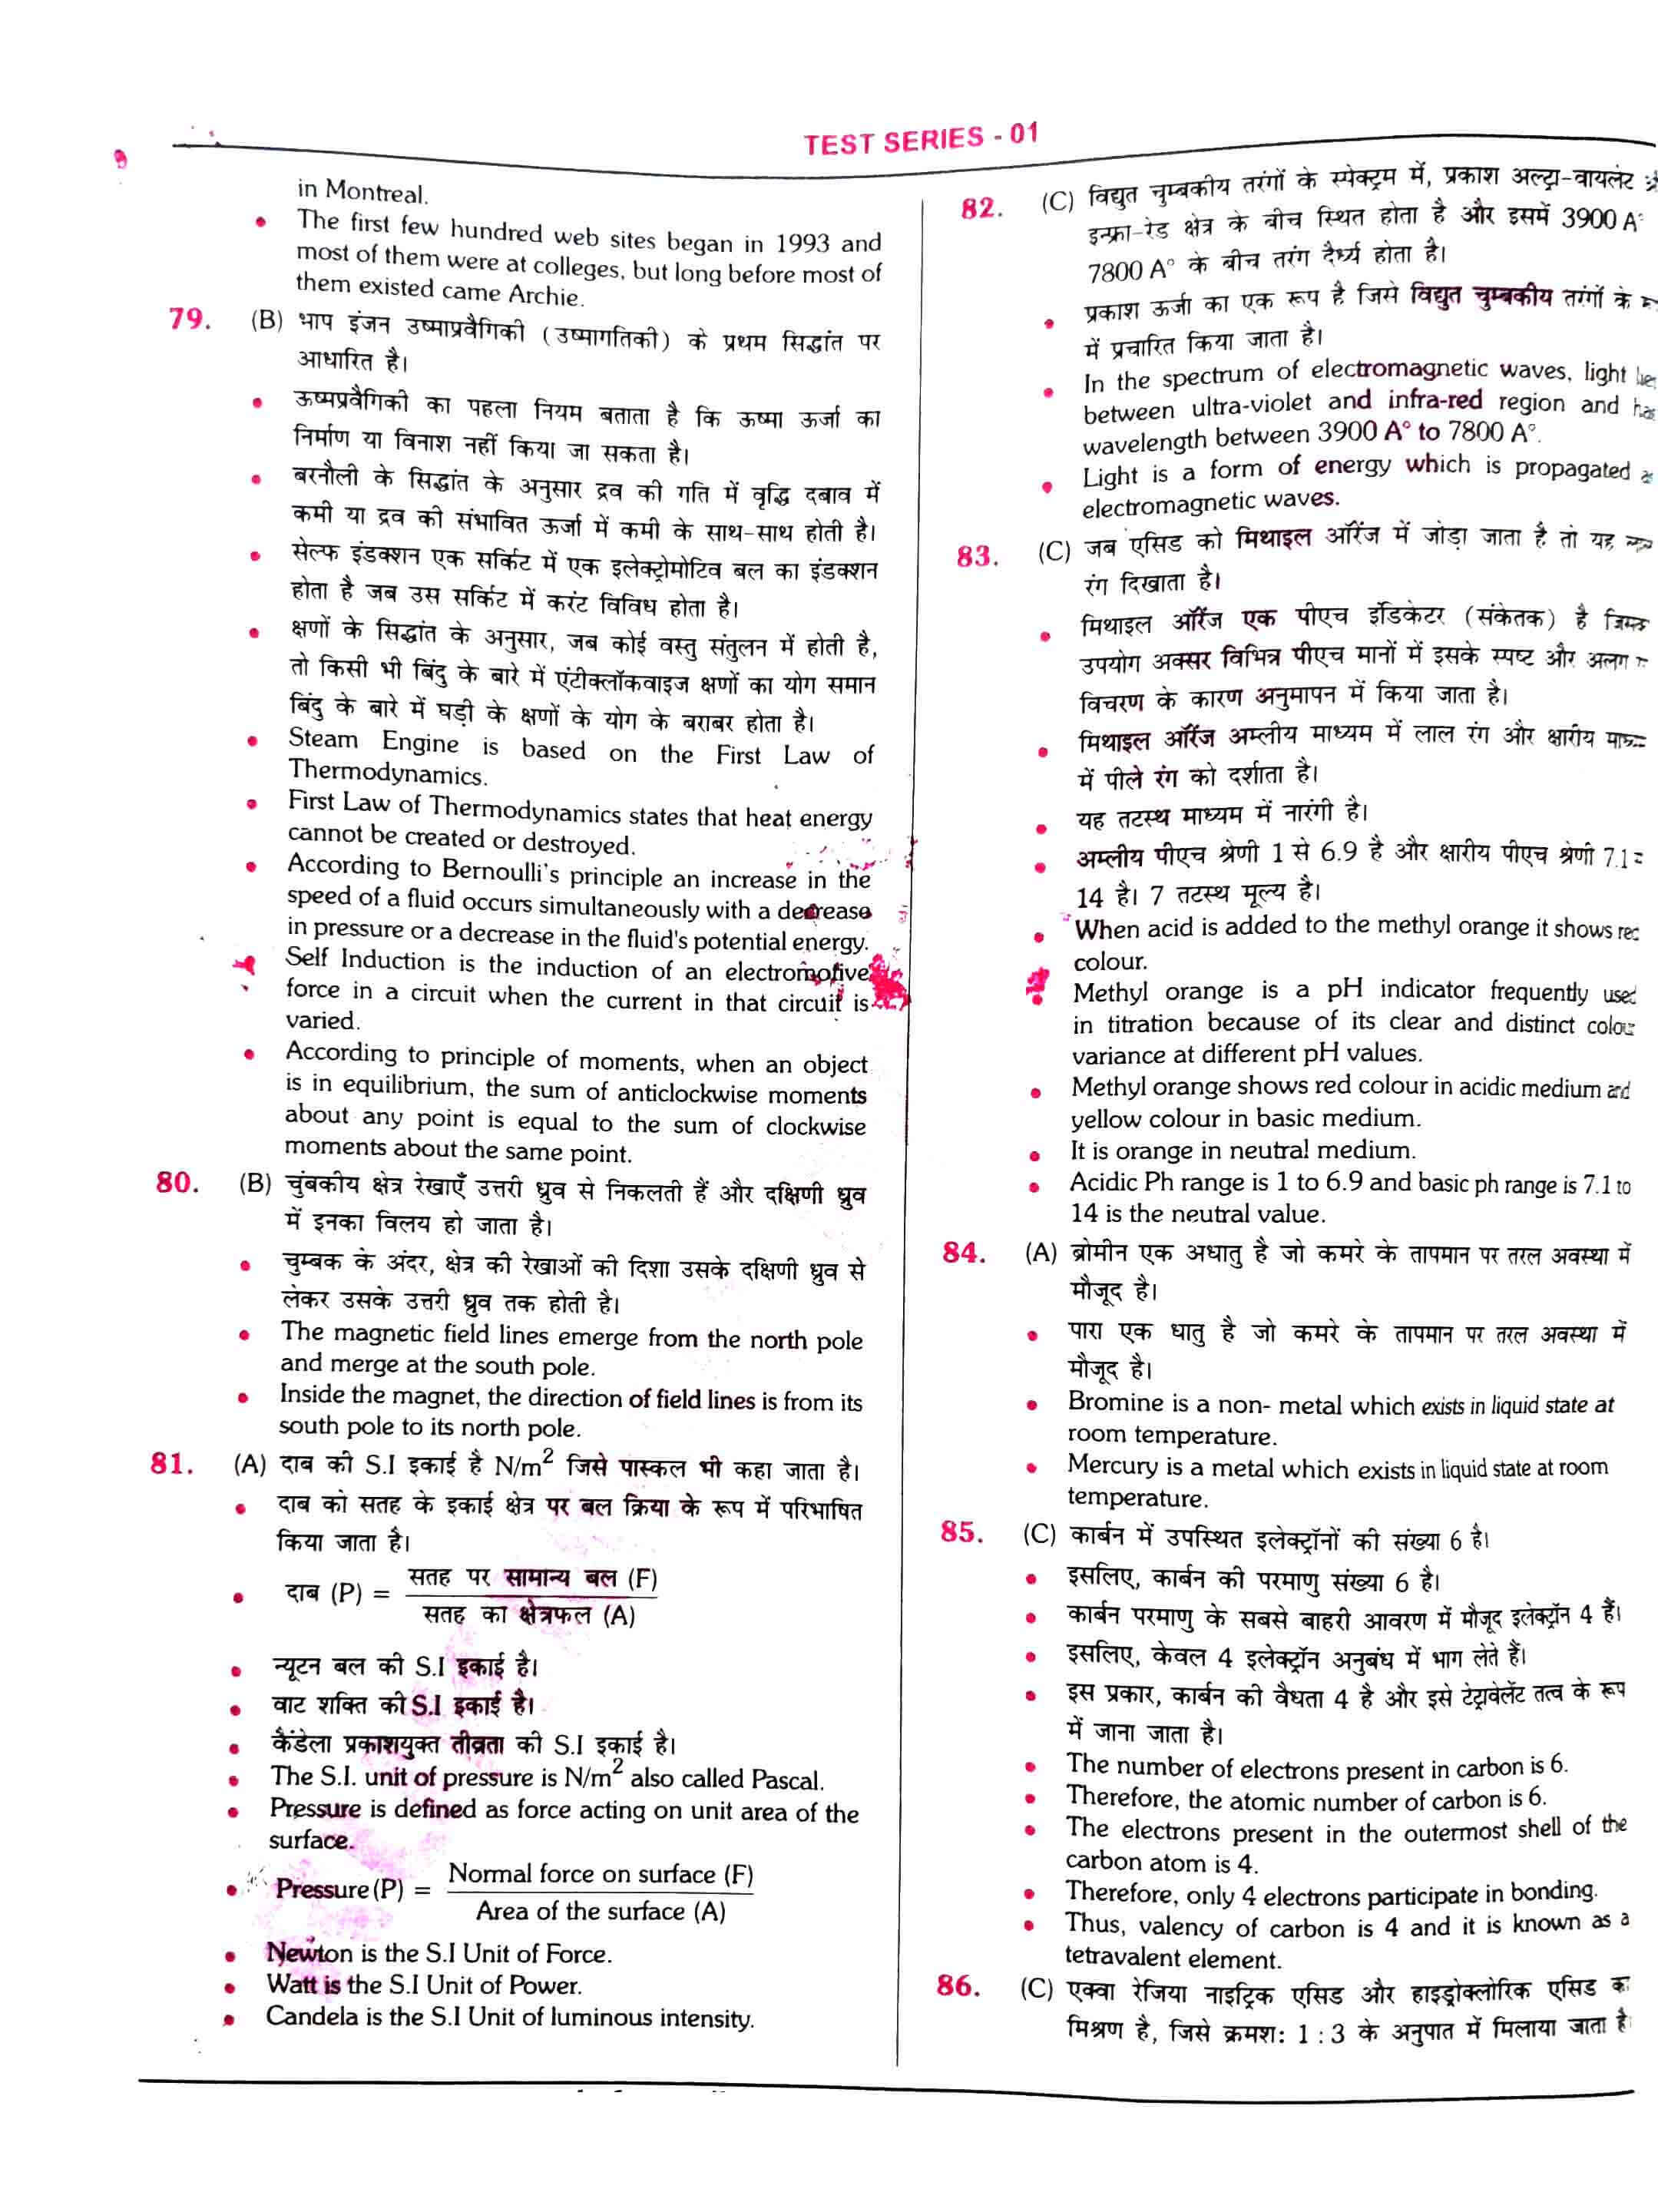 RRB NTPC Question Paper 2021 page 16